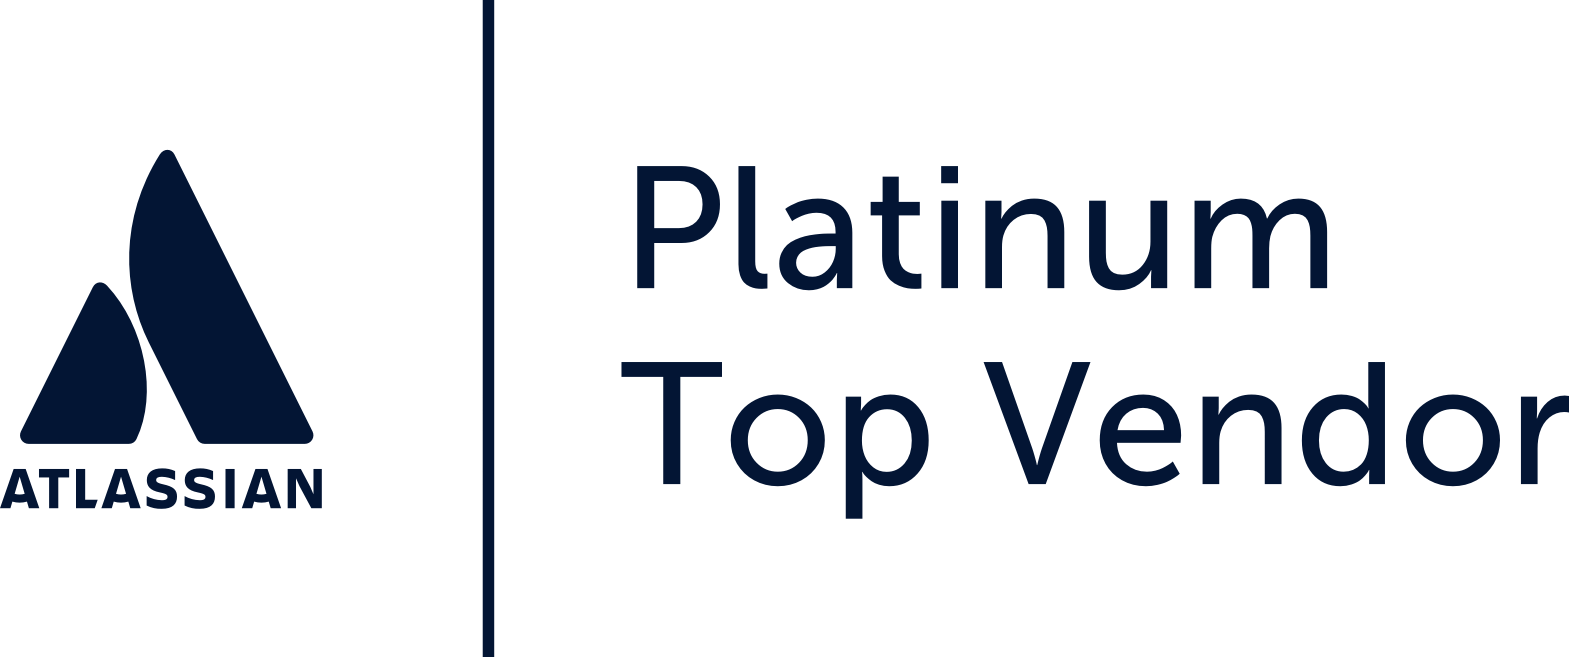 Atlassian platinum top vendor logo